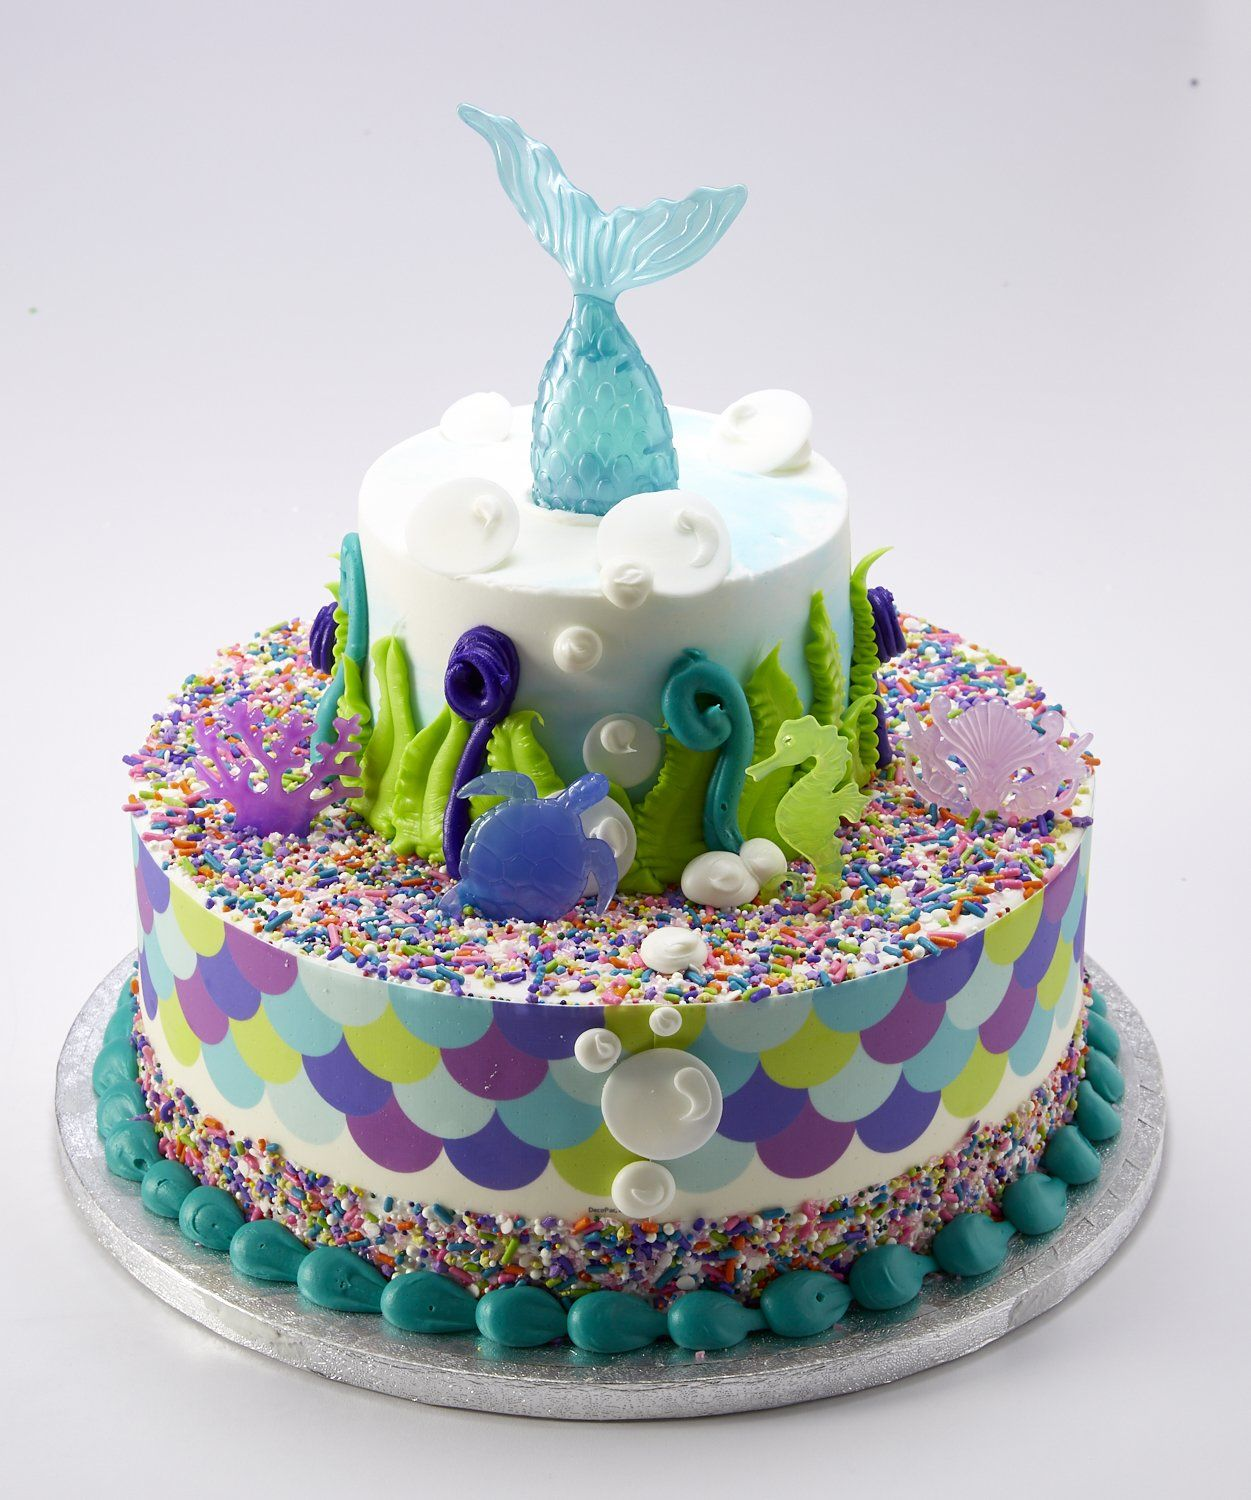 Admirable Sams Club Now Has A Mermaid Cake Con Immagini Funny Birthday Cards Online Overcheapnameinfo